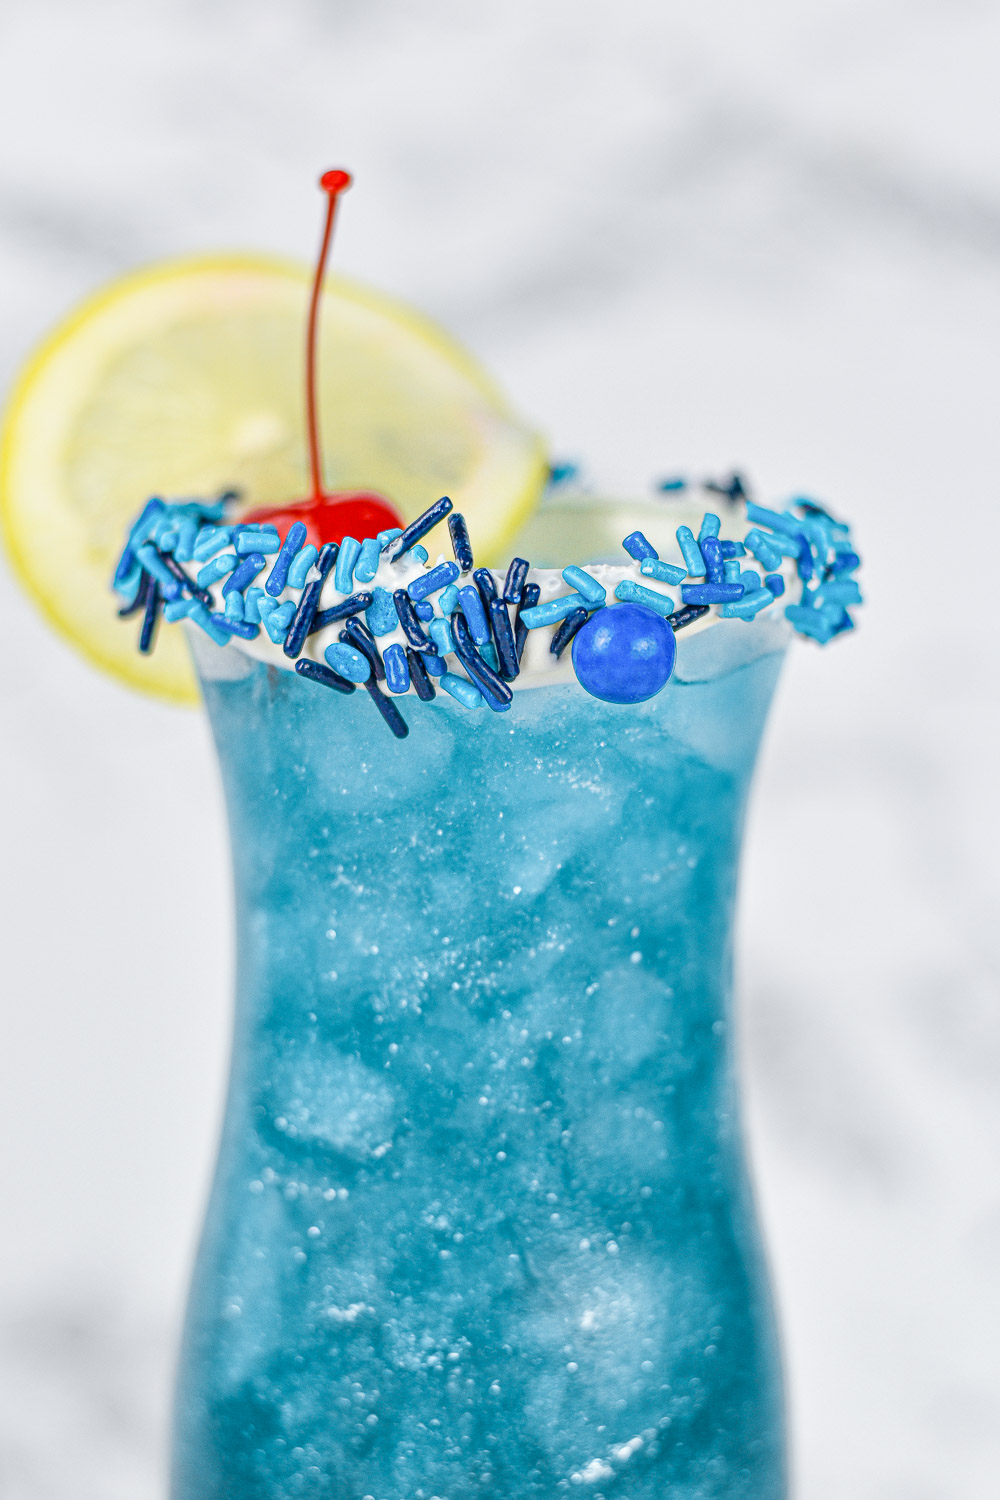 closeup of sprinkle rimmed glass showing glitter filled blue lagoon drink recipe